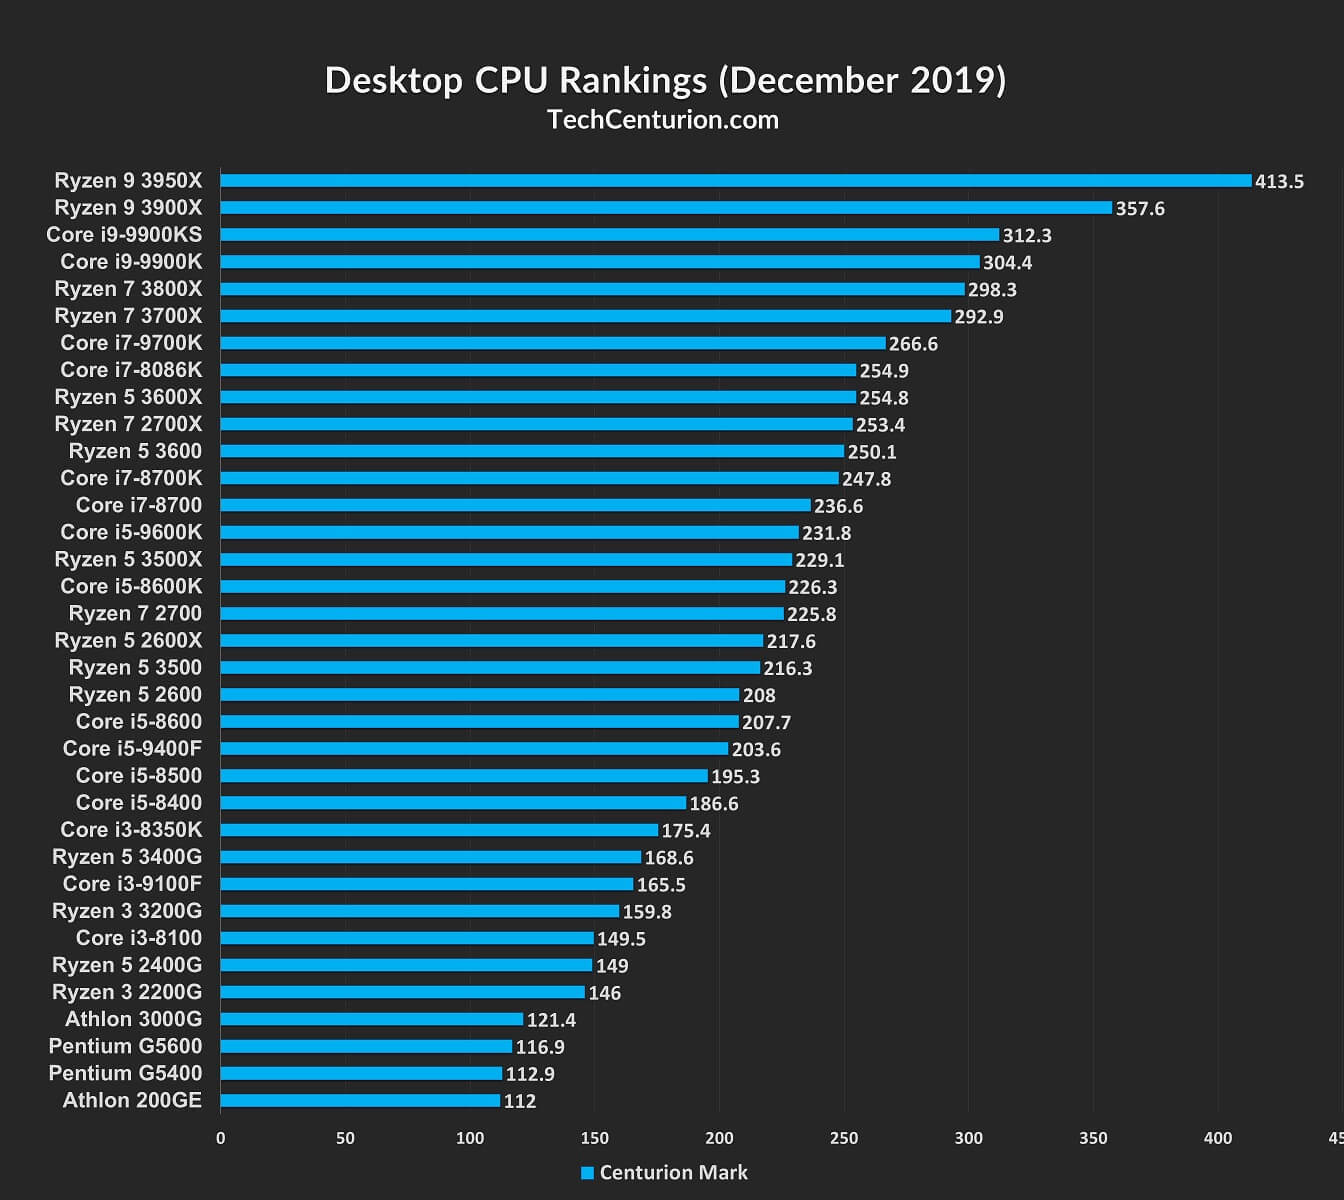 Desktop CPU Rankings